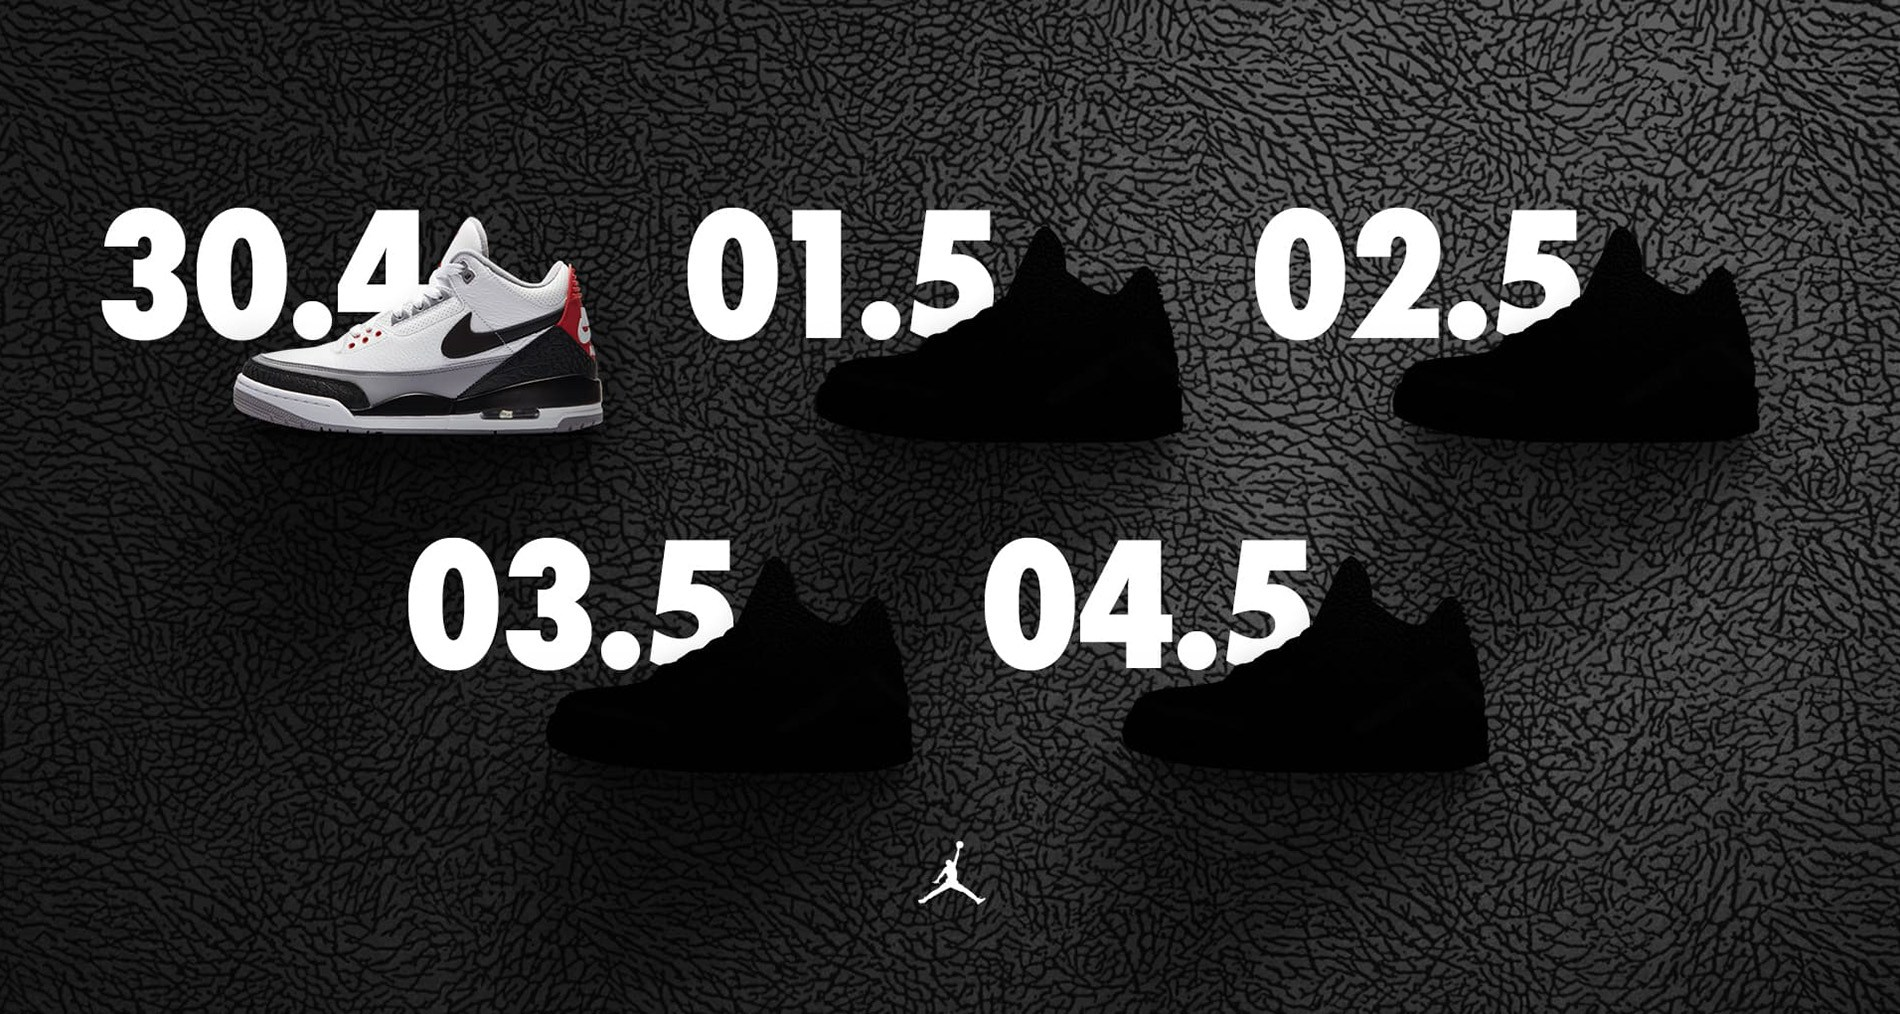 Jordan's Week of Threes continues today